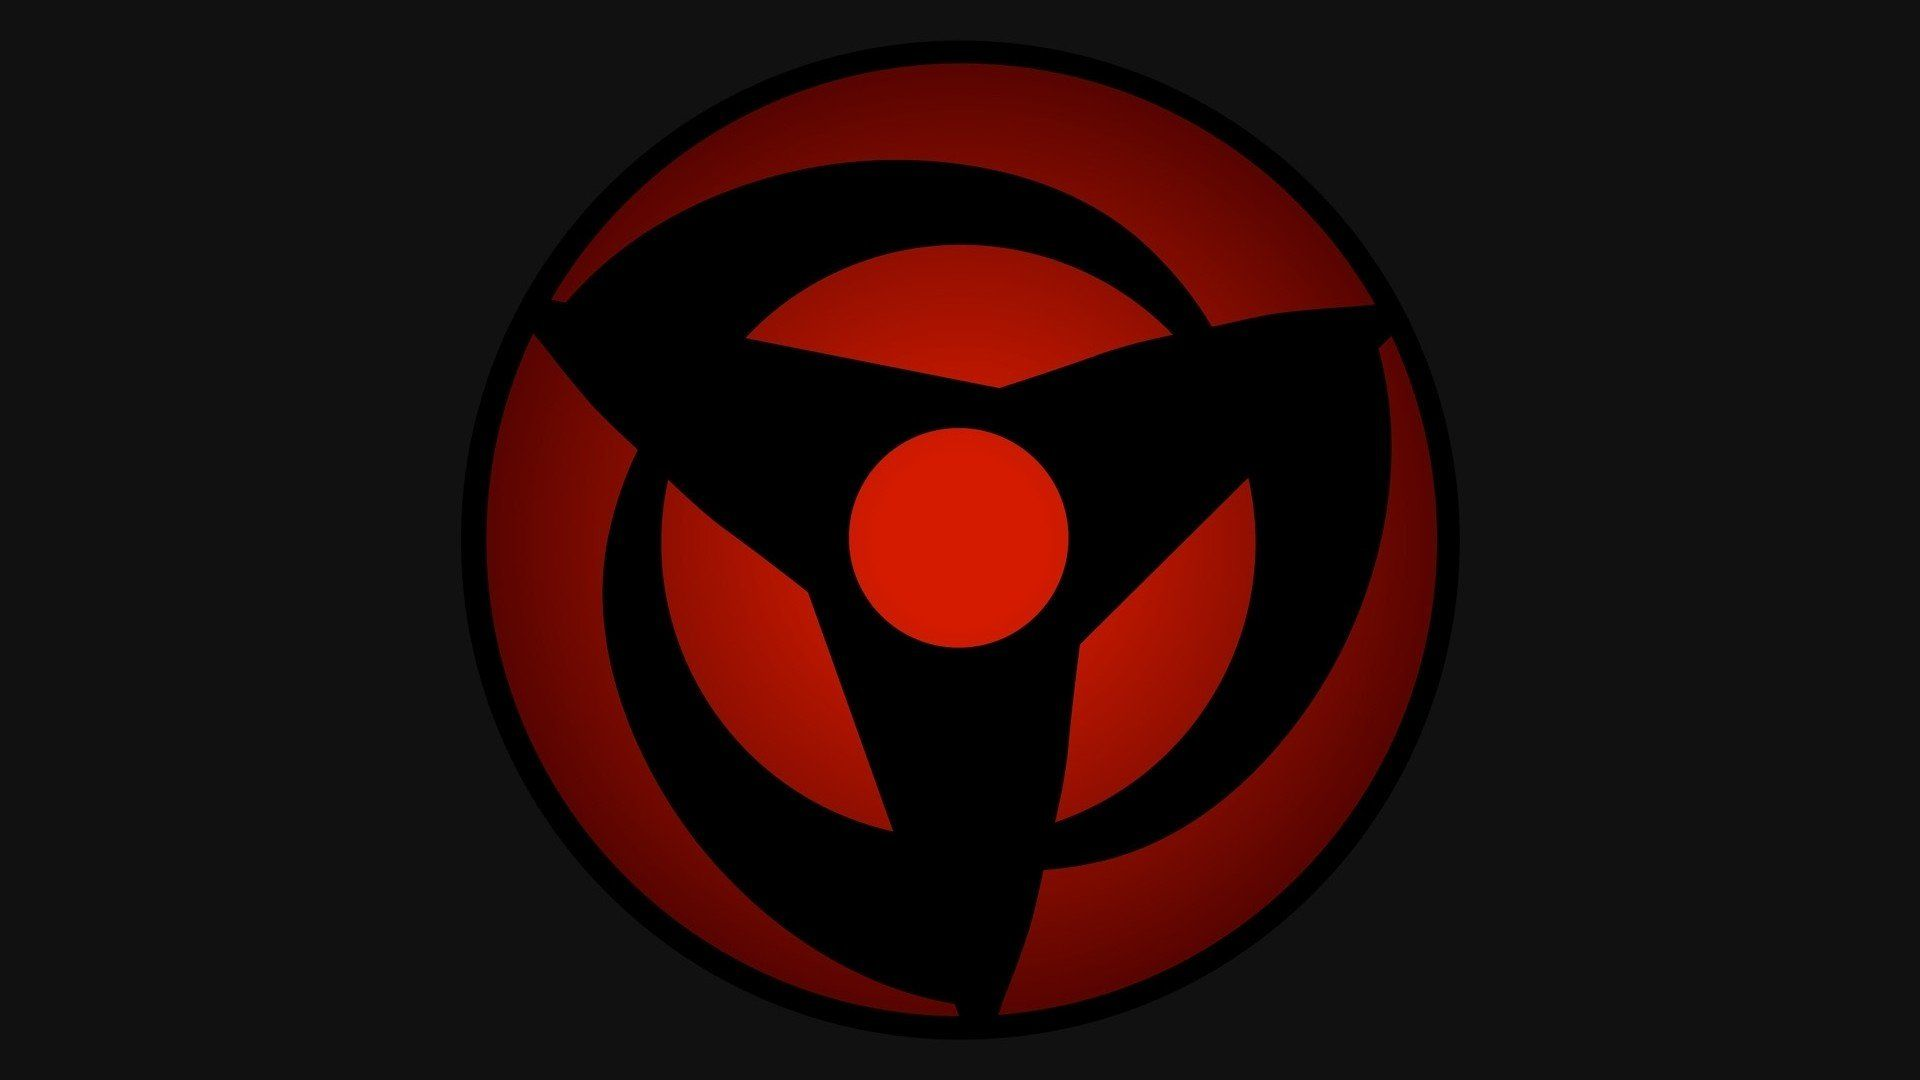 Sharingan Wallpapers Hd Android Apps On Google Play 1920 1200 Imagenes De Sharingan Wallpapers 41 Wallpapers Sharingan Wallpapers Naruto Wallpaper Wallpaper